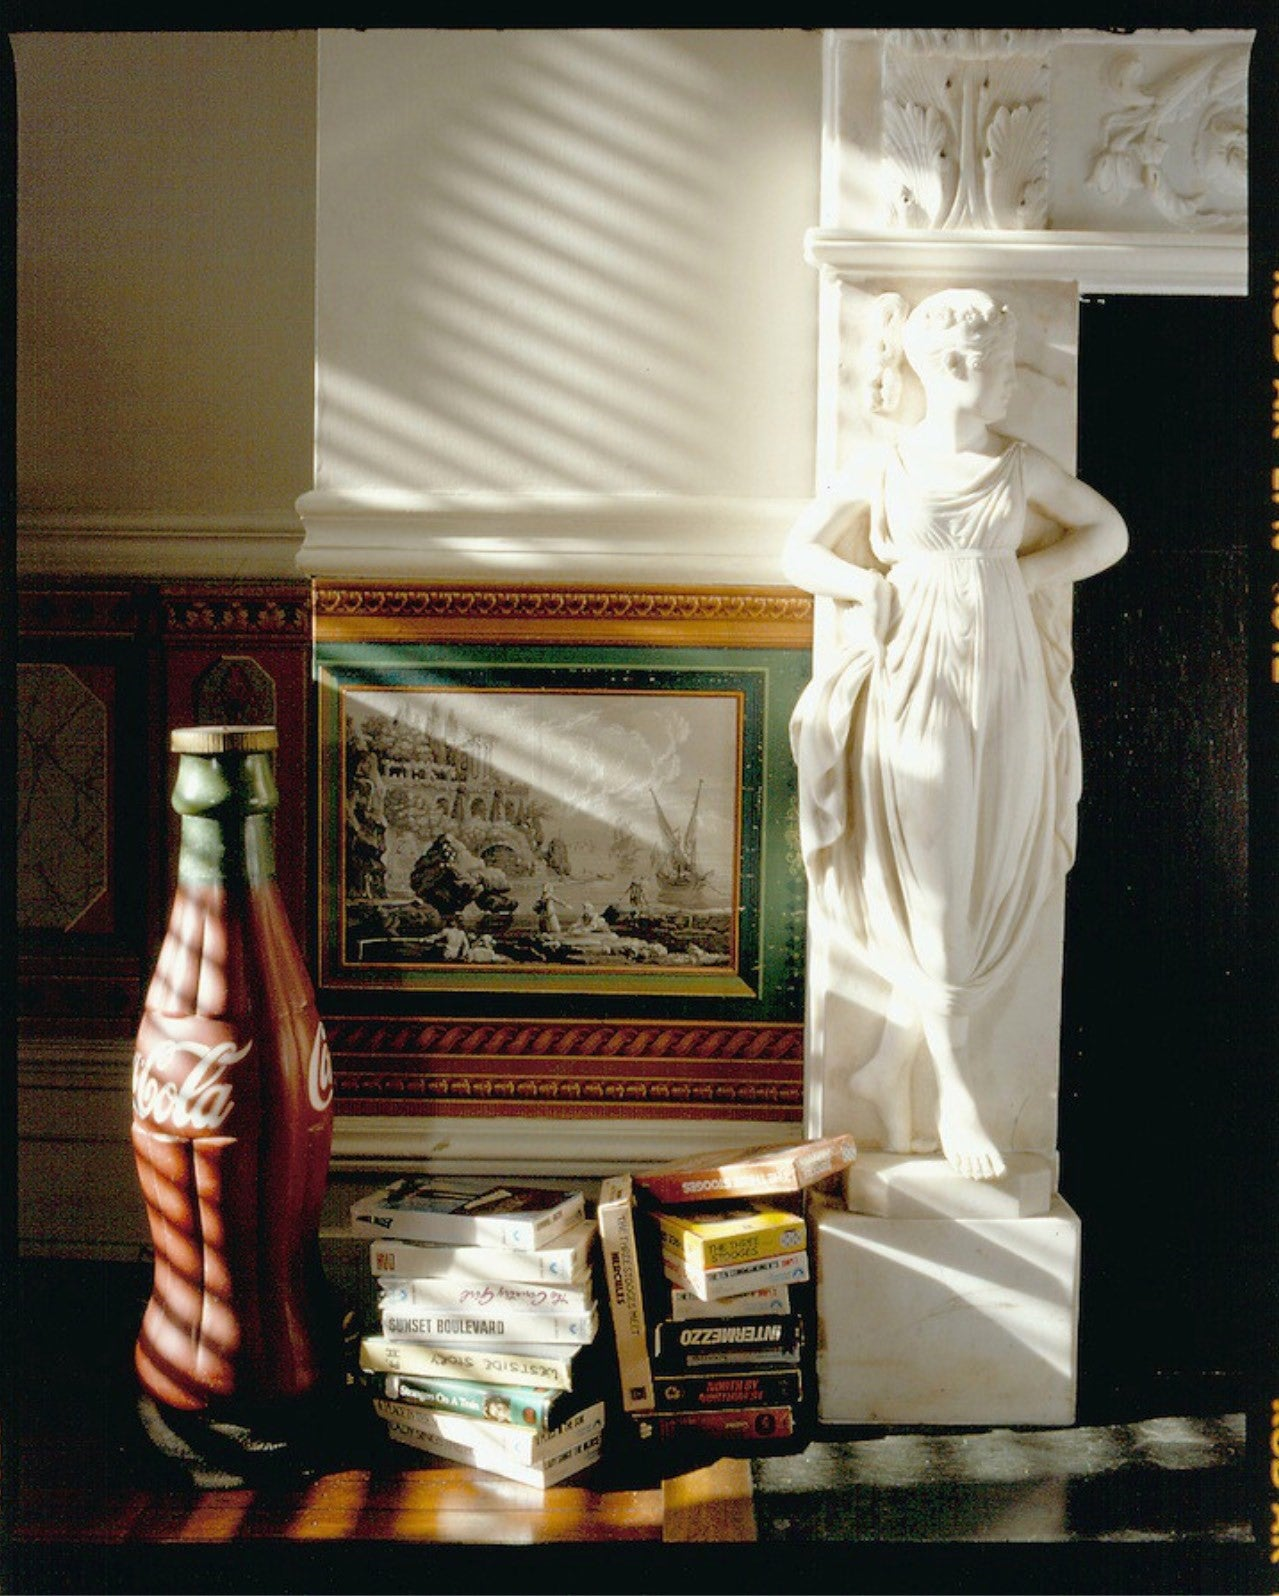 Shots from inside Warhol bedroom after death in Understanding Andy Warhol as a collector for A Collected Man